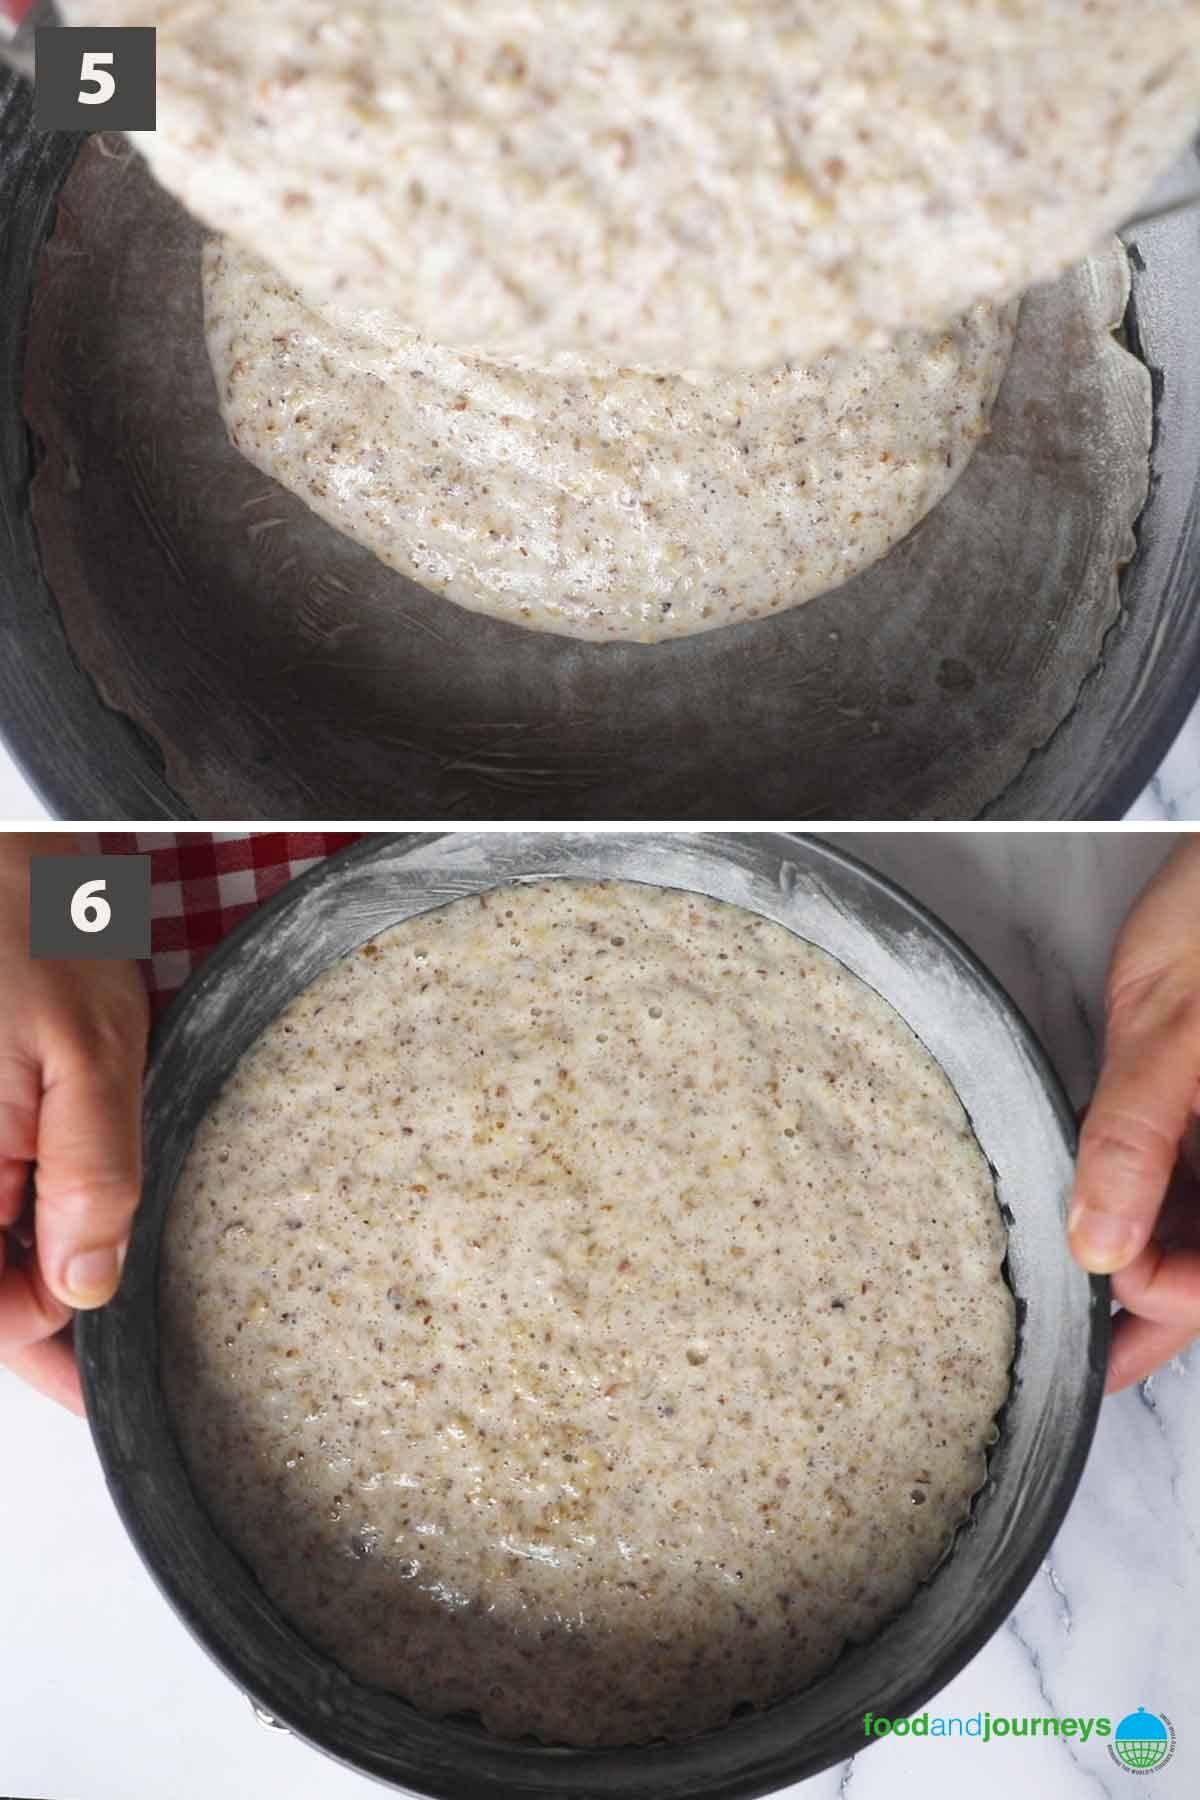 Second part of a collage of images showing the step by step process on how to prepare hazelnut cake at home.